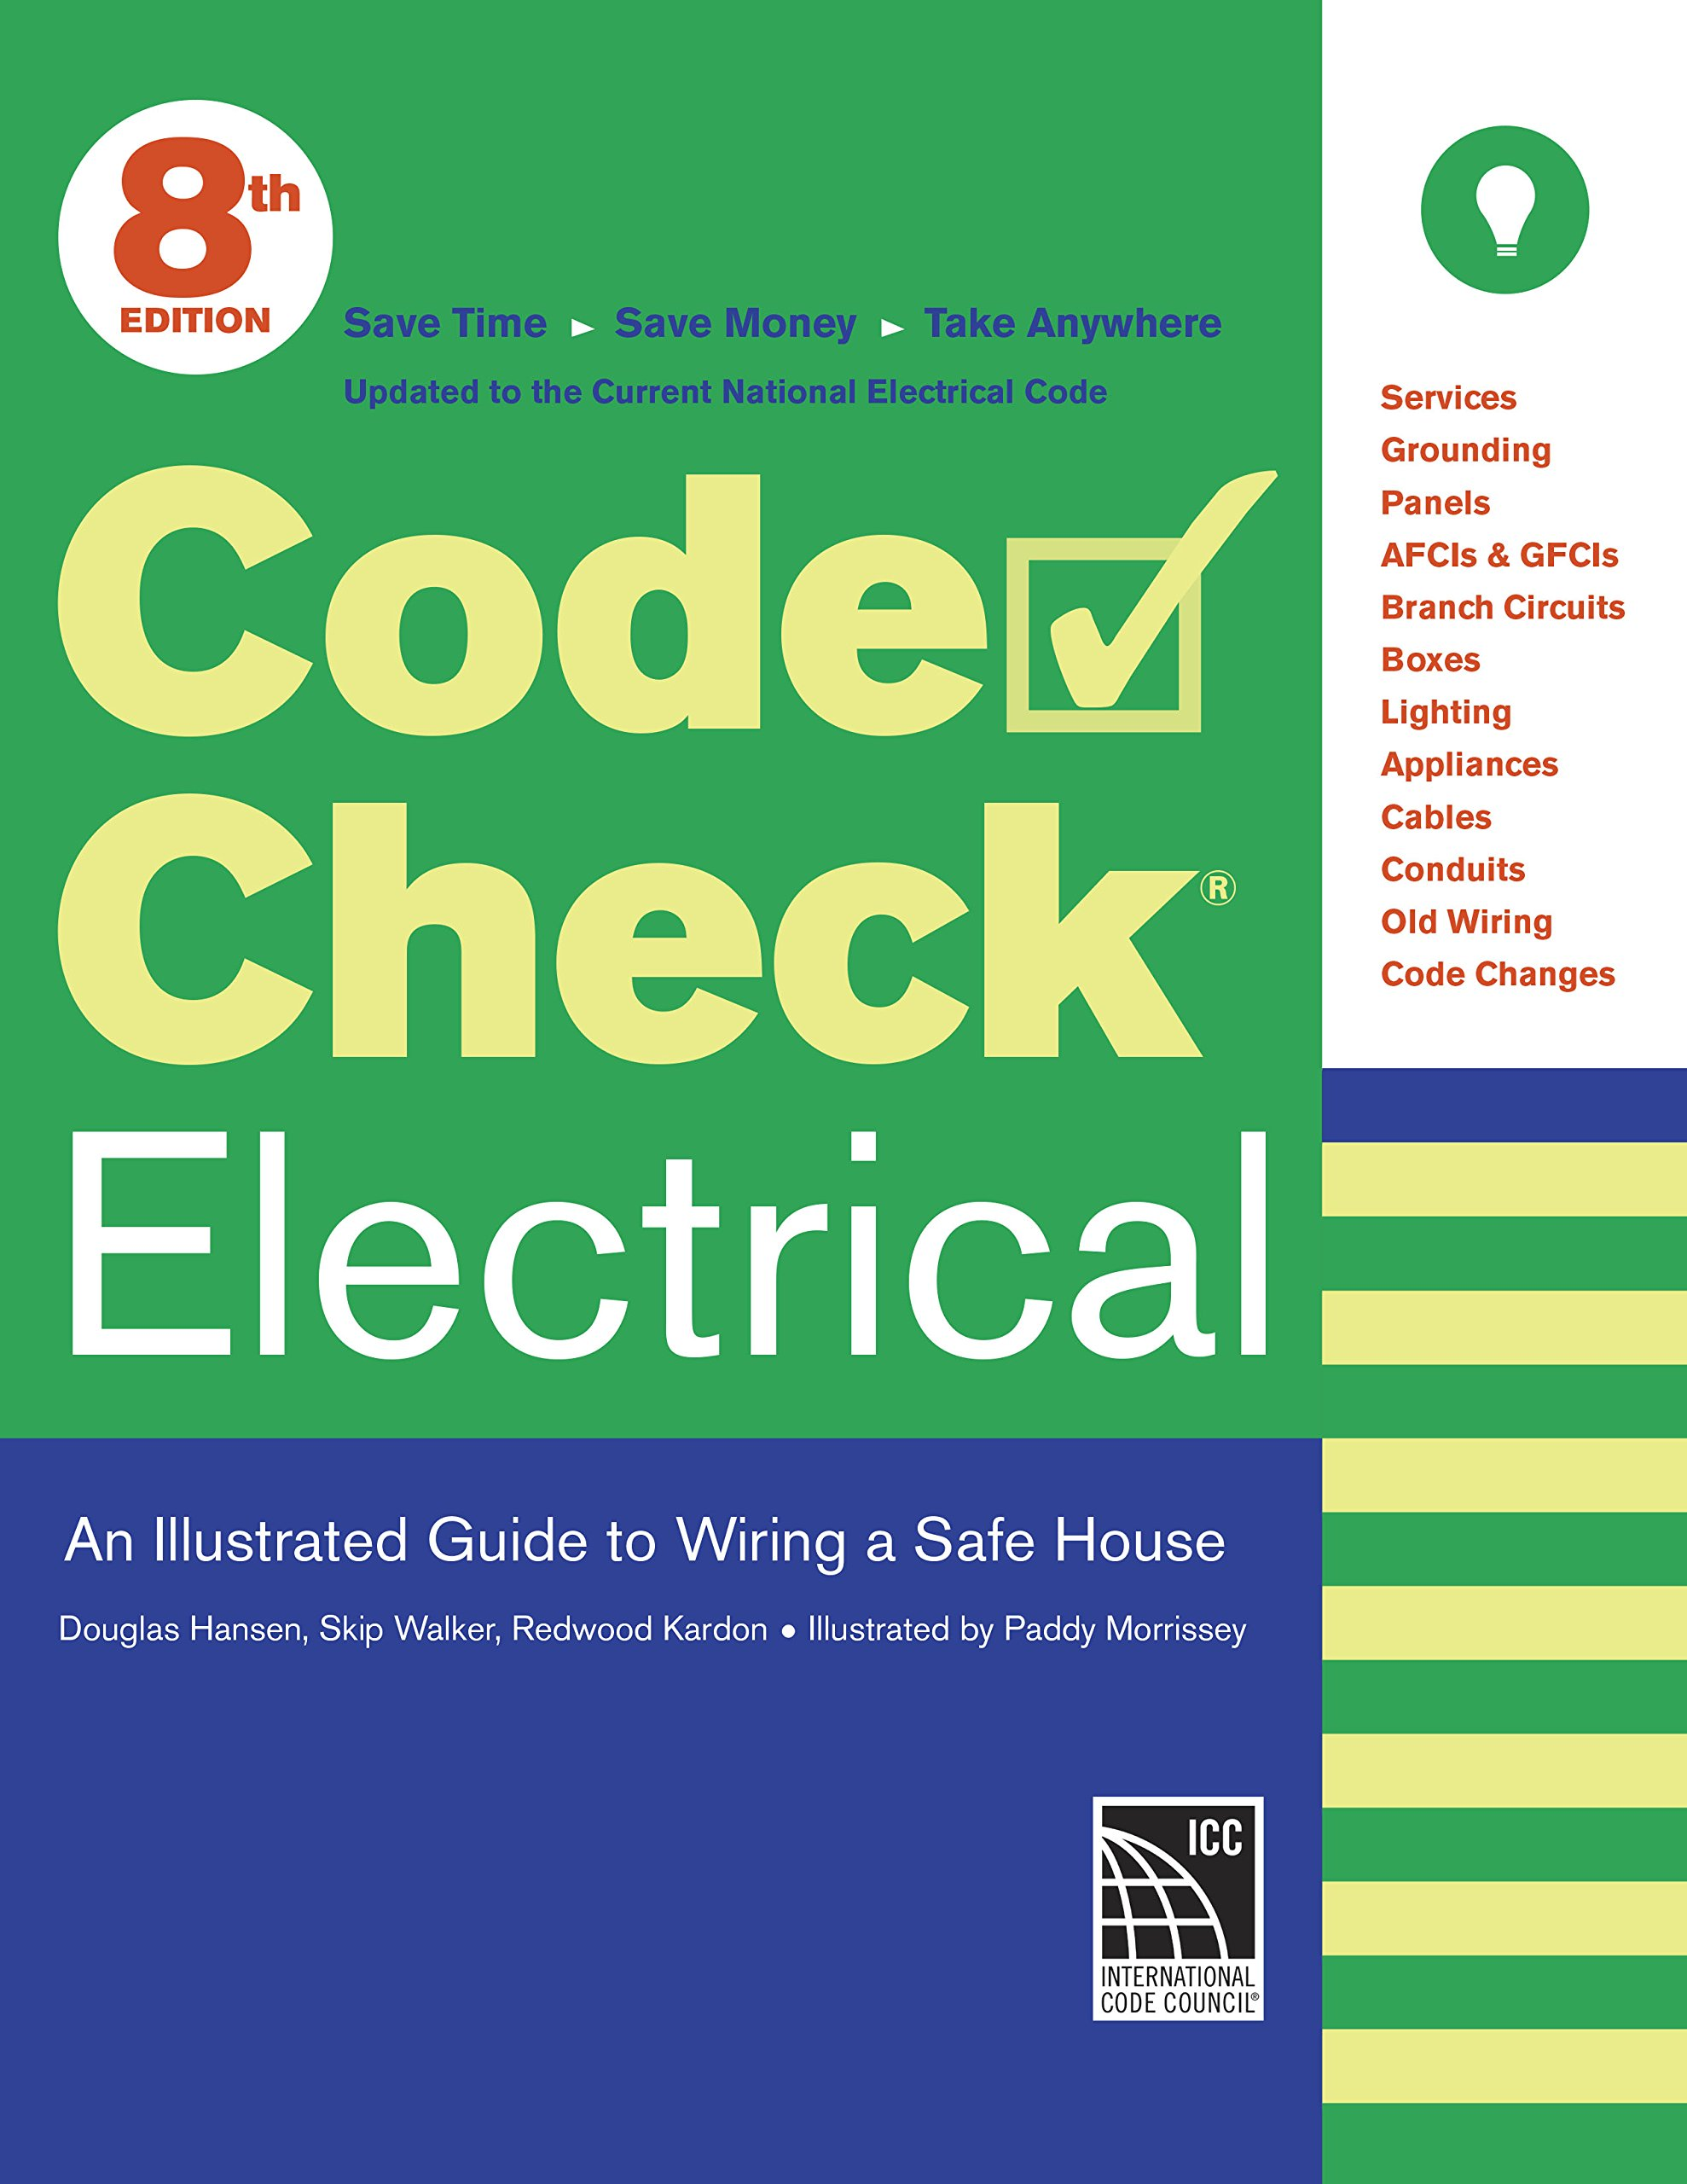 Code check electrical an illustrated guide to wiring a safe house code check electrical an illustrated guide to wiring a safe house redwood kardon douglas hansen skip walker paddy morrissey 9781631869167 amazon fandeluxe Gallery